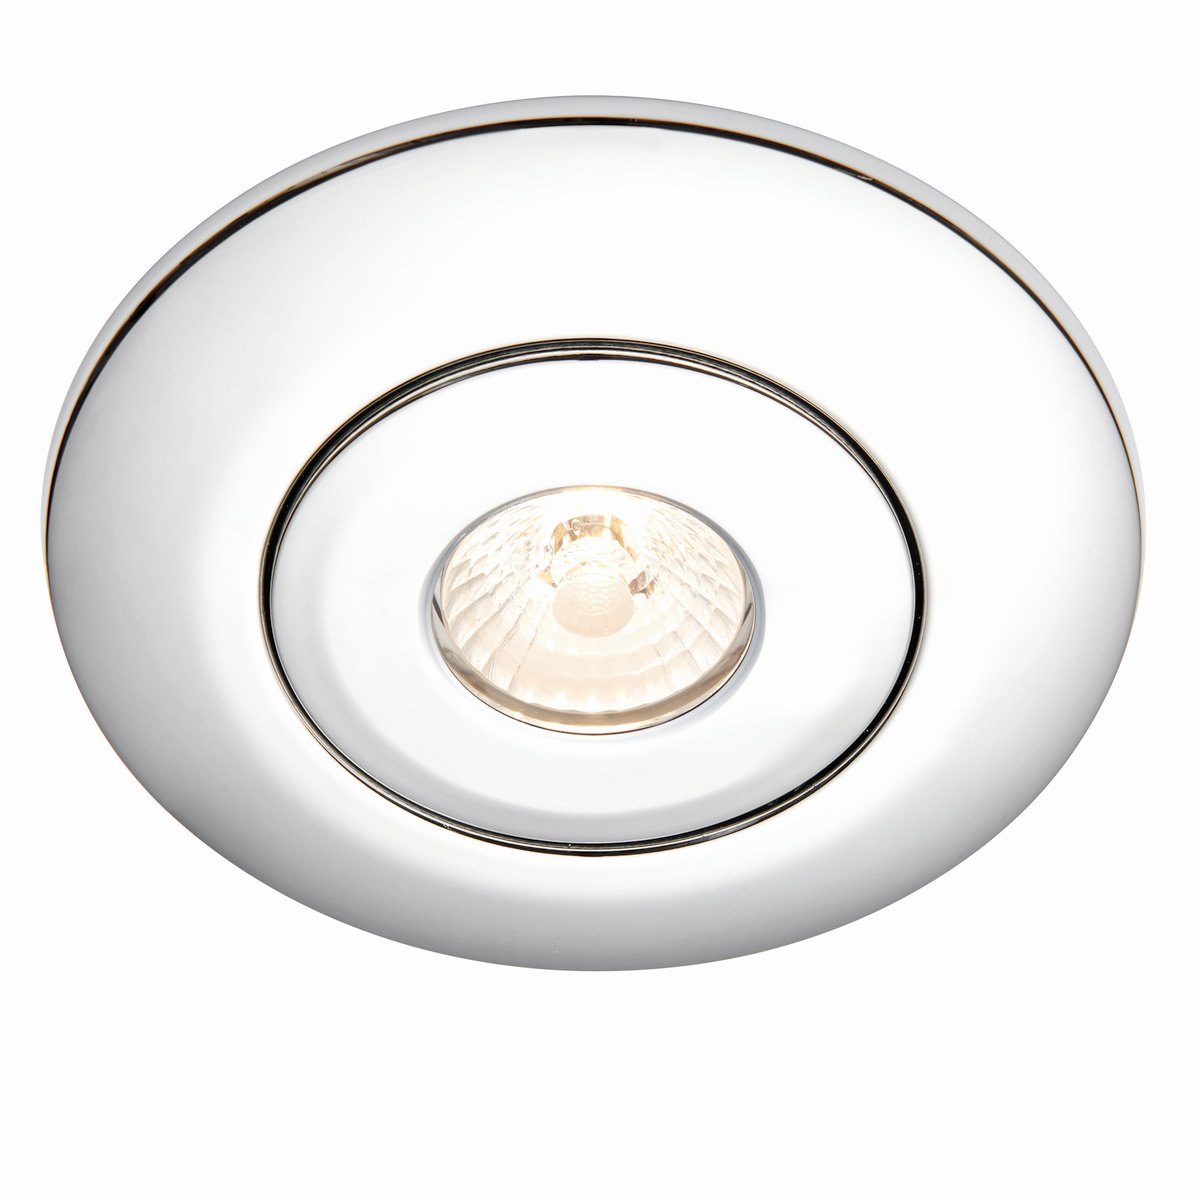 Modern Satin Nickel Low Voltage to 240V Mains Voltage GU10 Recessed Downlight Converter - Converts Holes ranging from Approx. 65mm to 125mm National Lighting